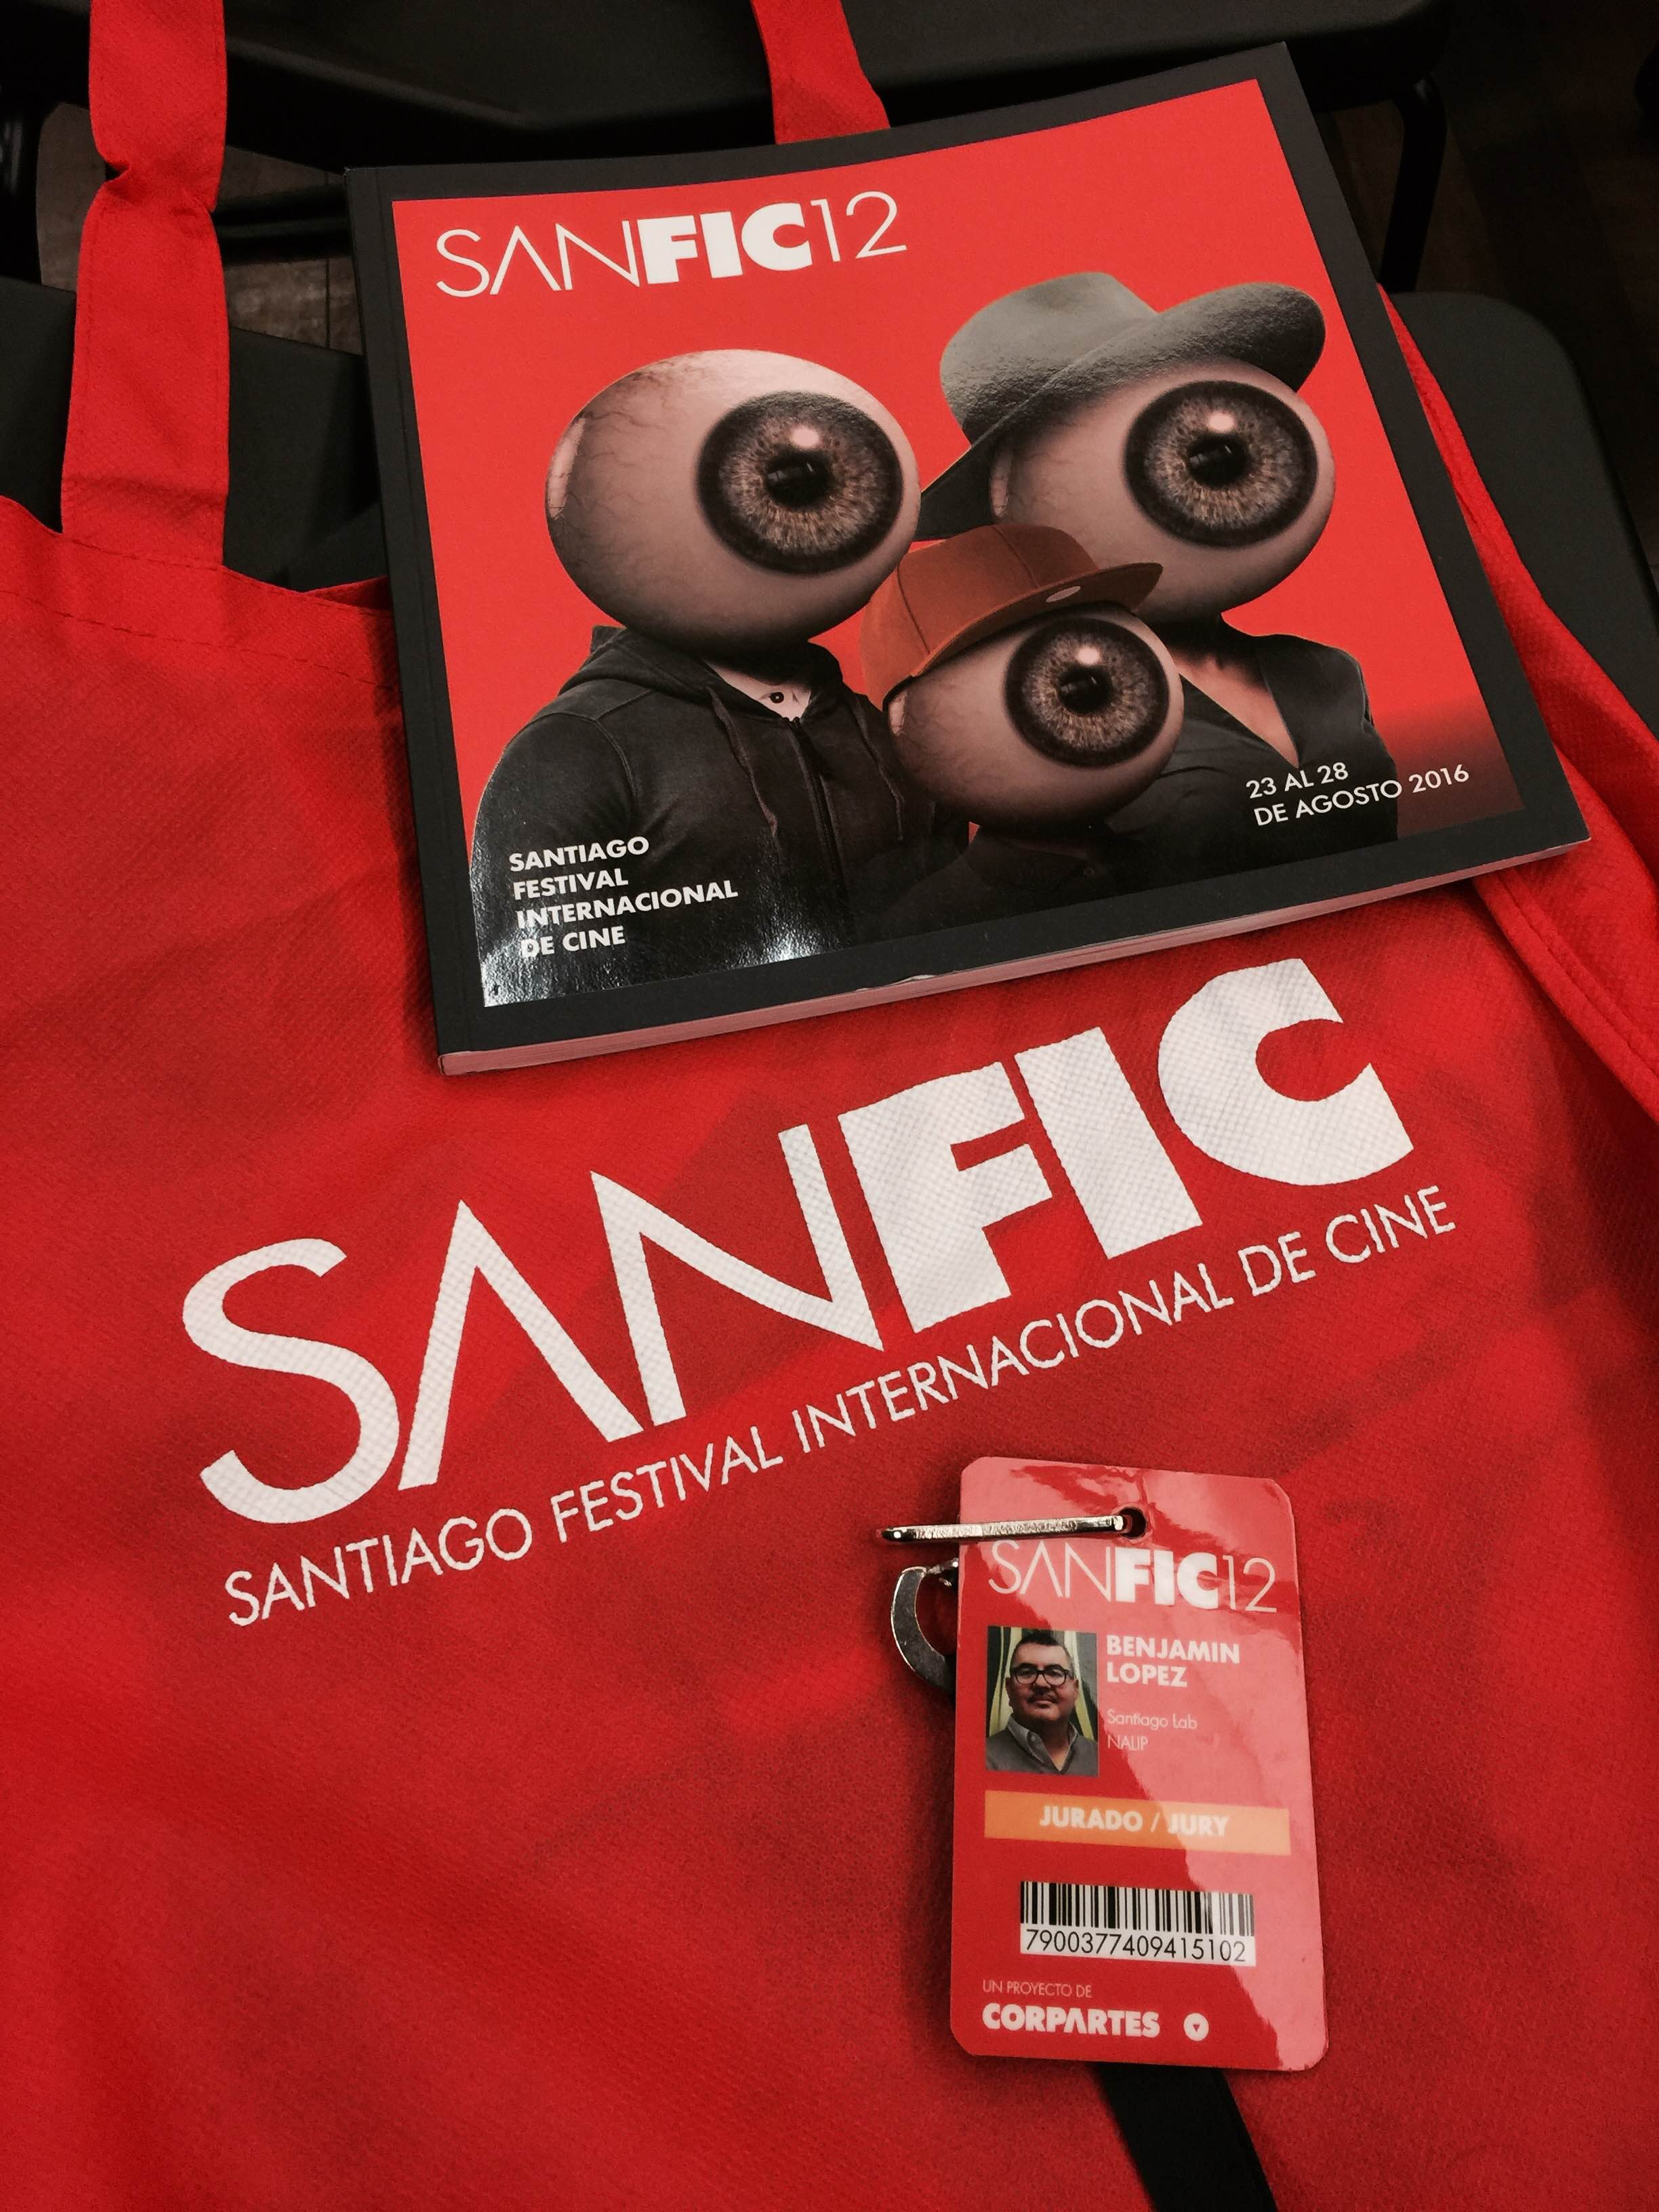 NALIP at SANFIC 12 in Chile